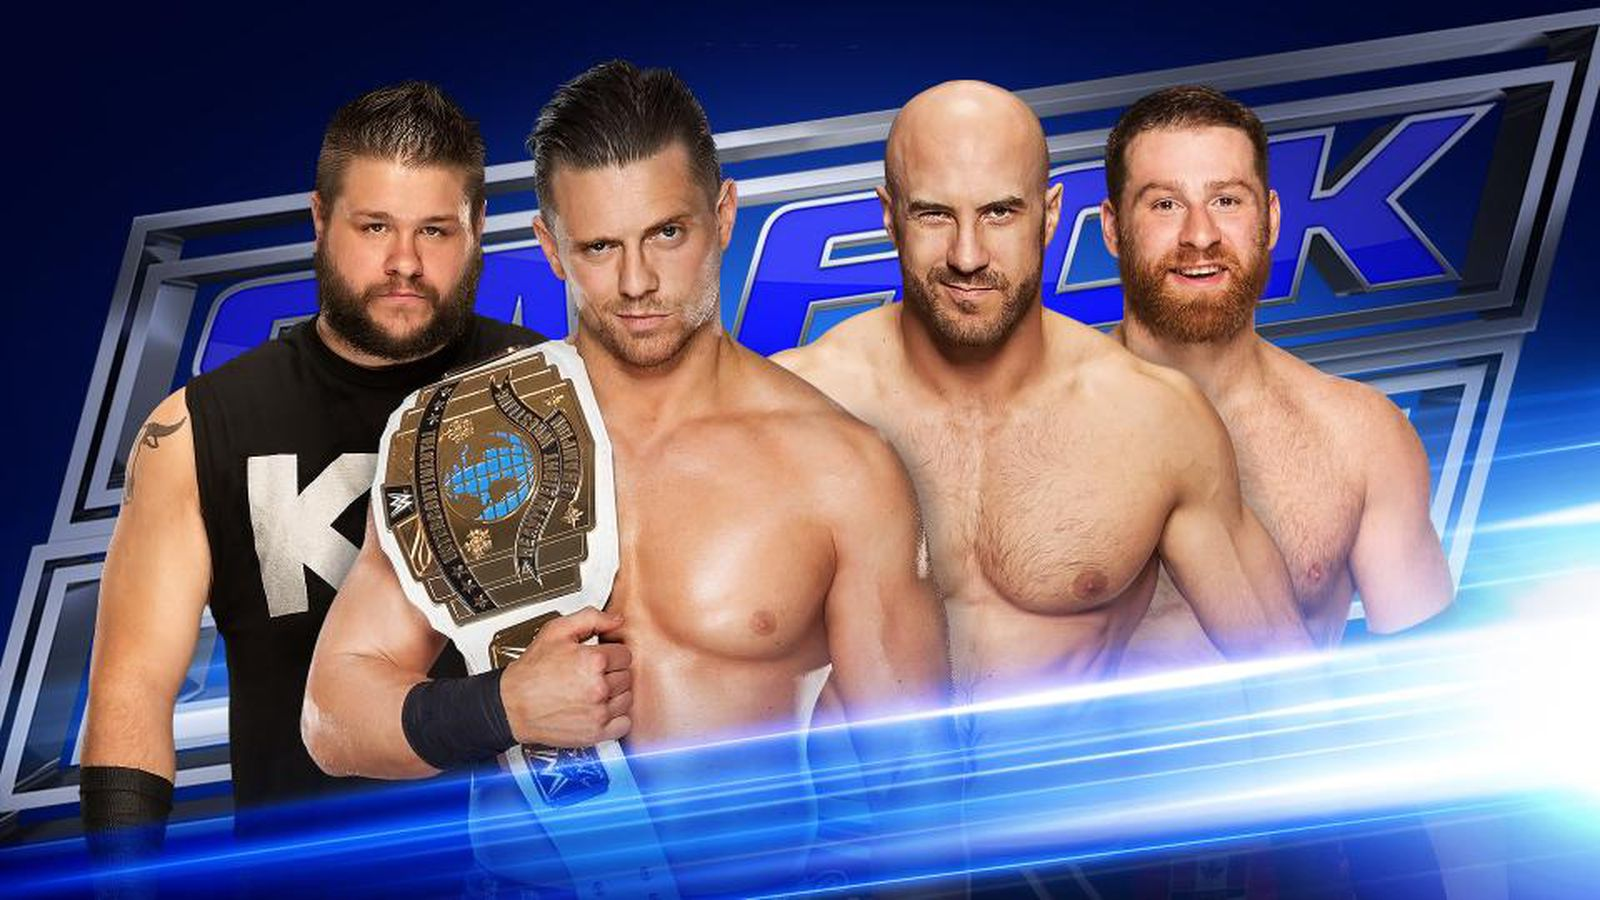 Wwe Smackdown Live 6 12 2016